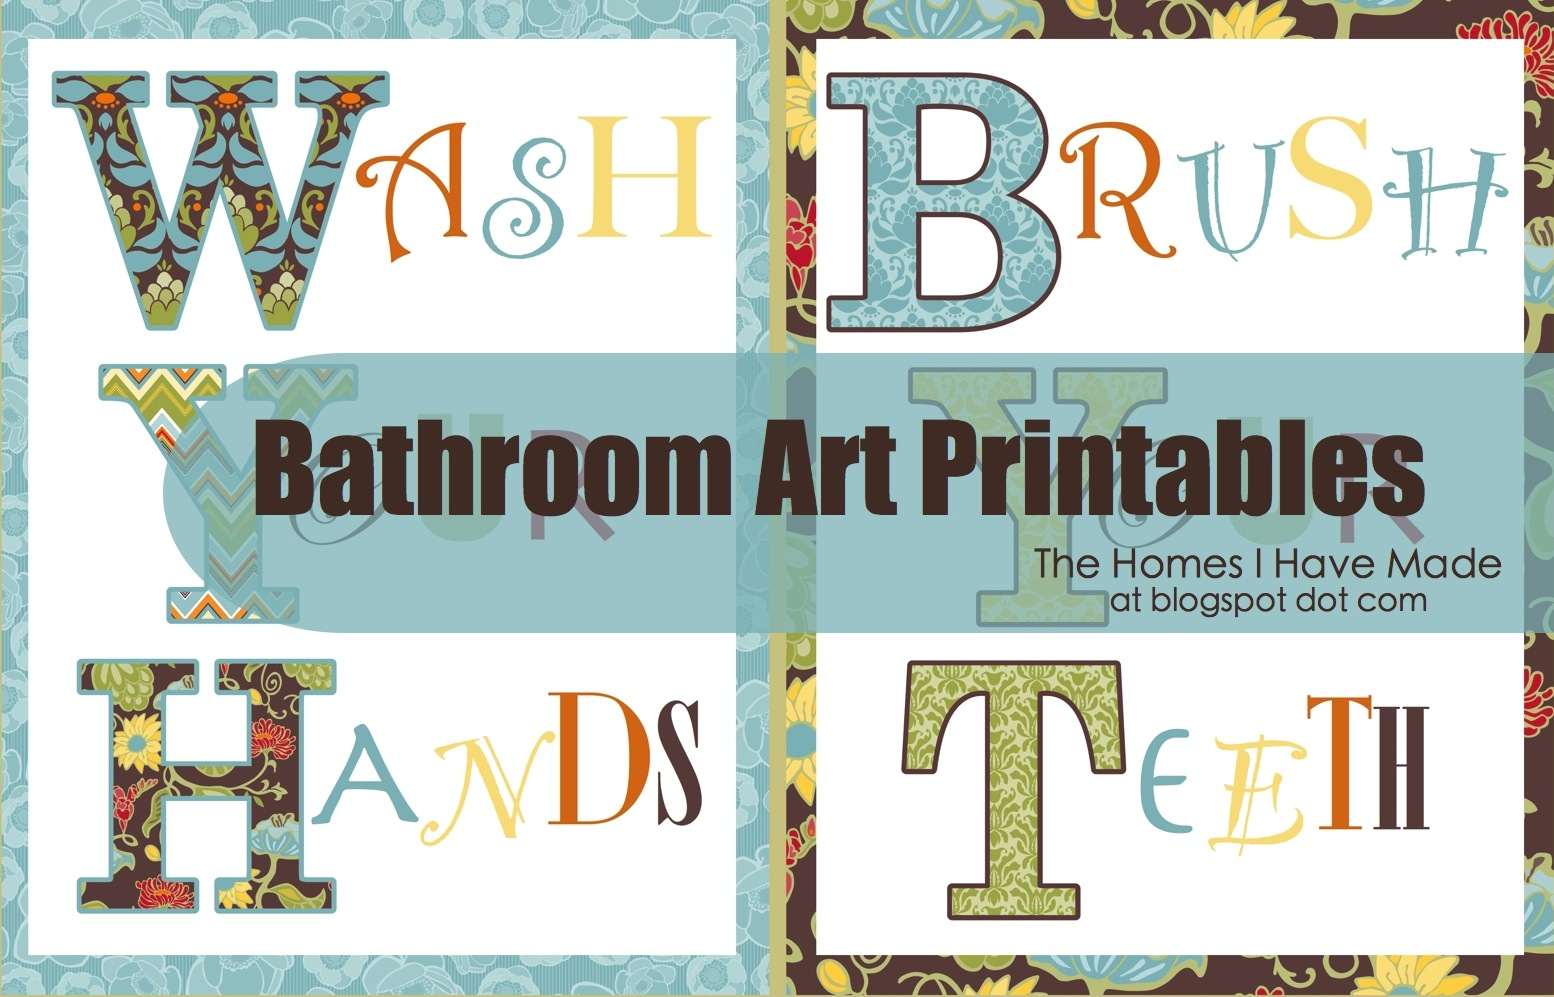 Bathroom wall art printables - Bathroom Wall Art Printables 1